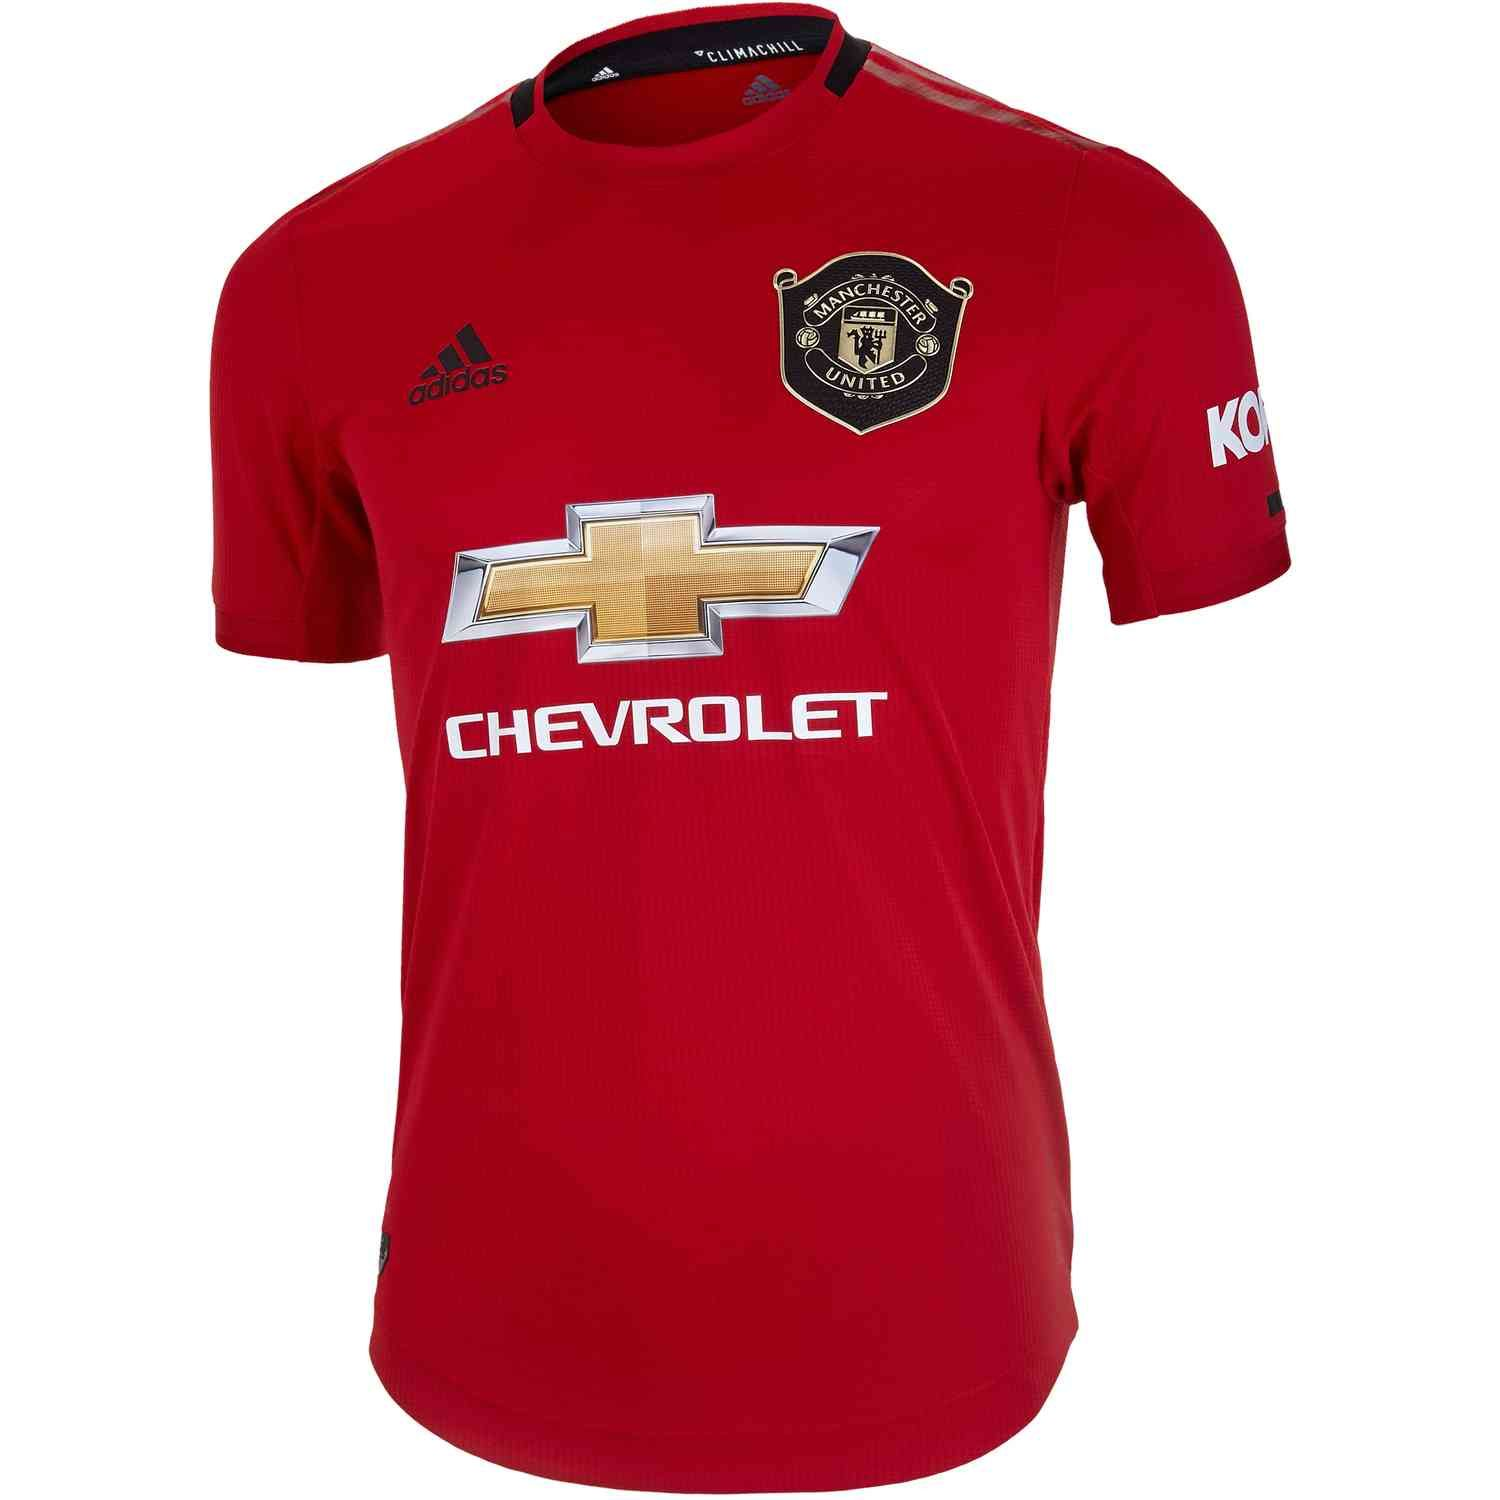 2019 20 Adidas Manchester United Home Authentic Jersey Soccerpro Manchester United The Unit Jersey